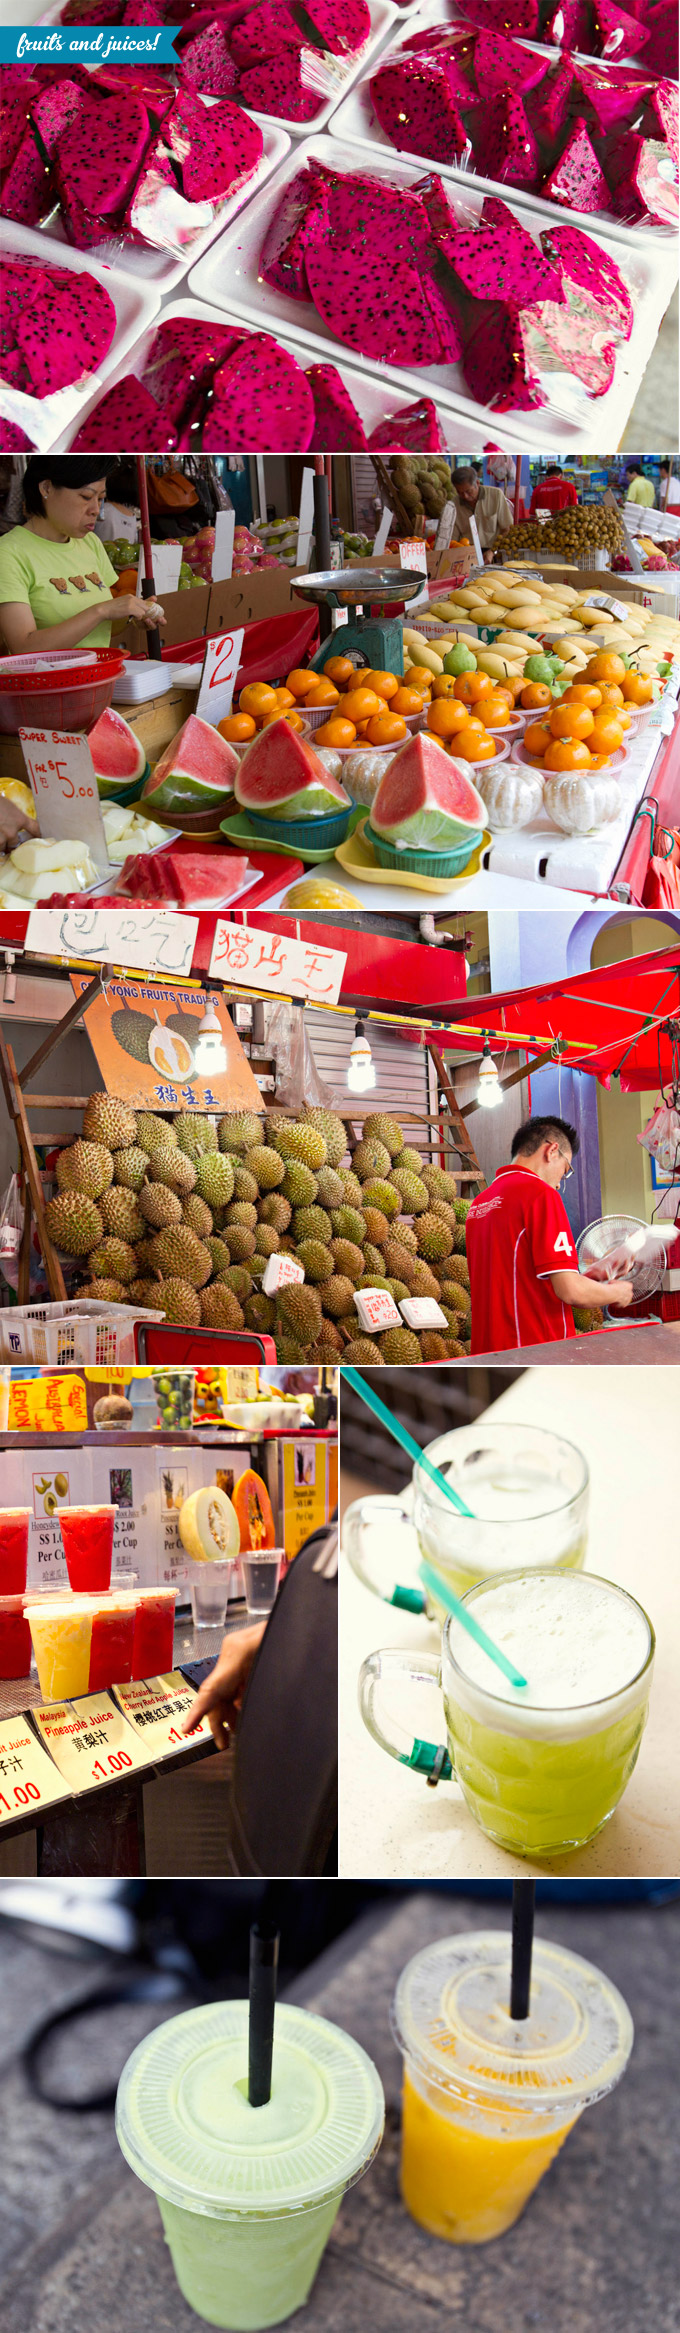 Fruits and juices in Singapore